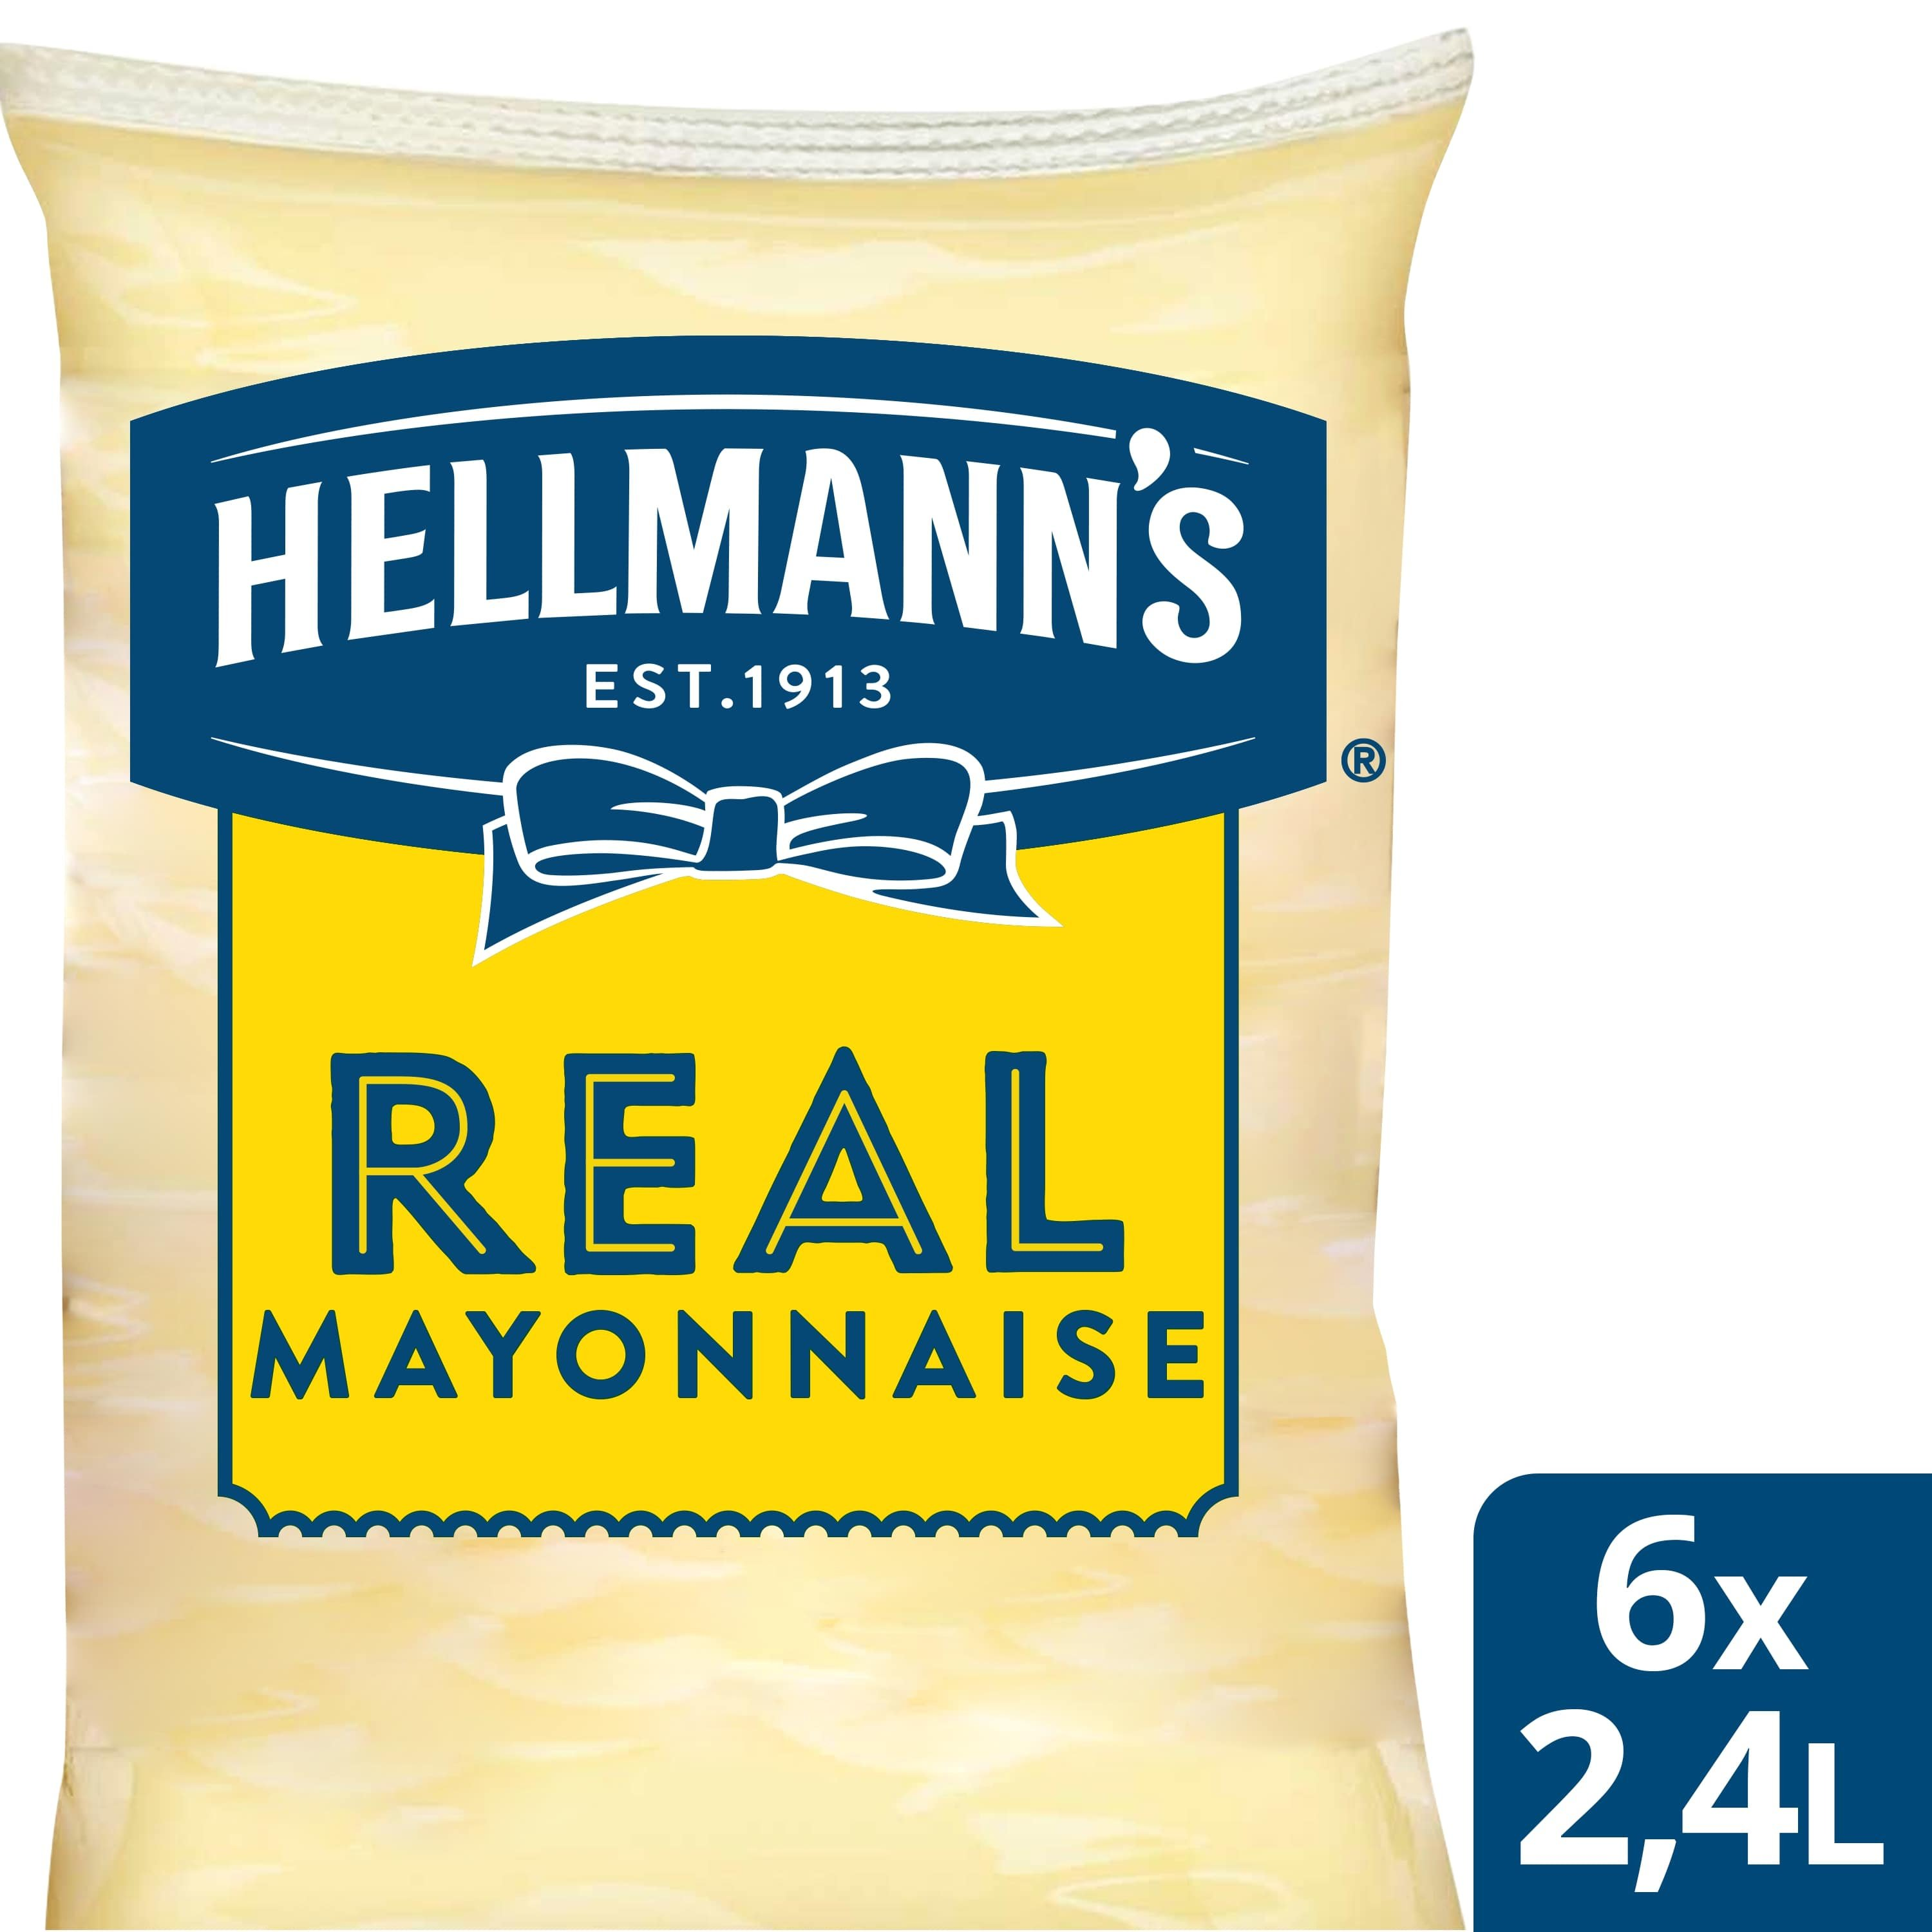 Hellmann's Real Mayonaise Pouch -